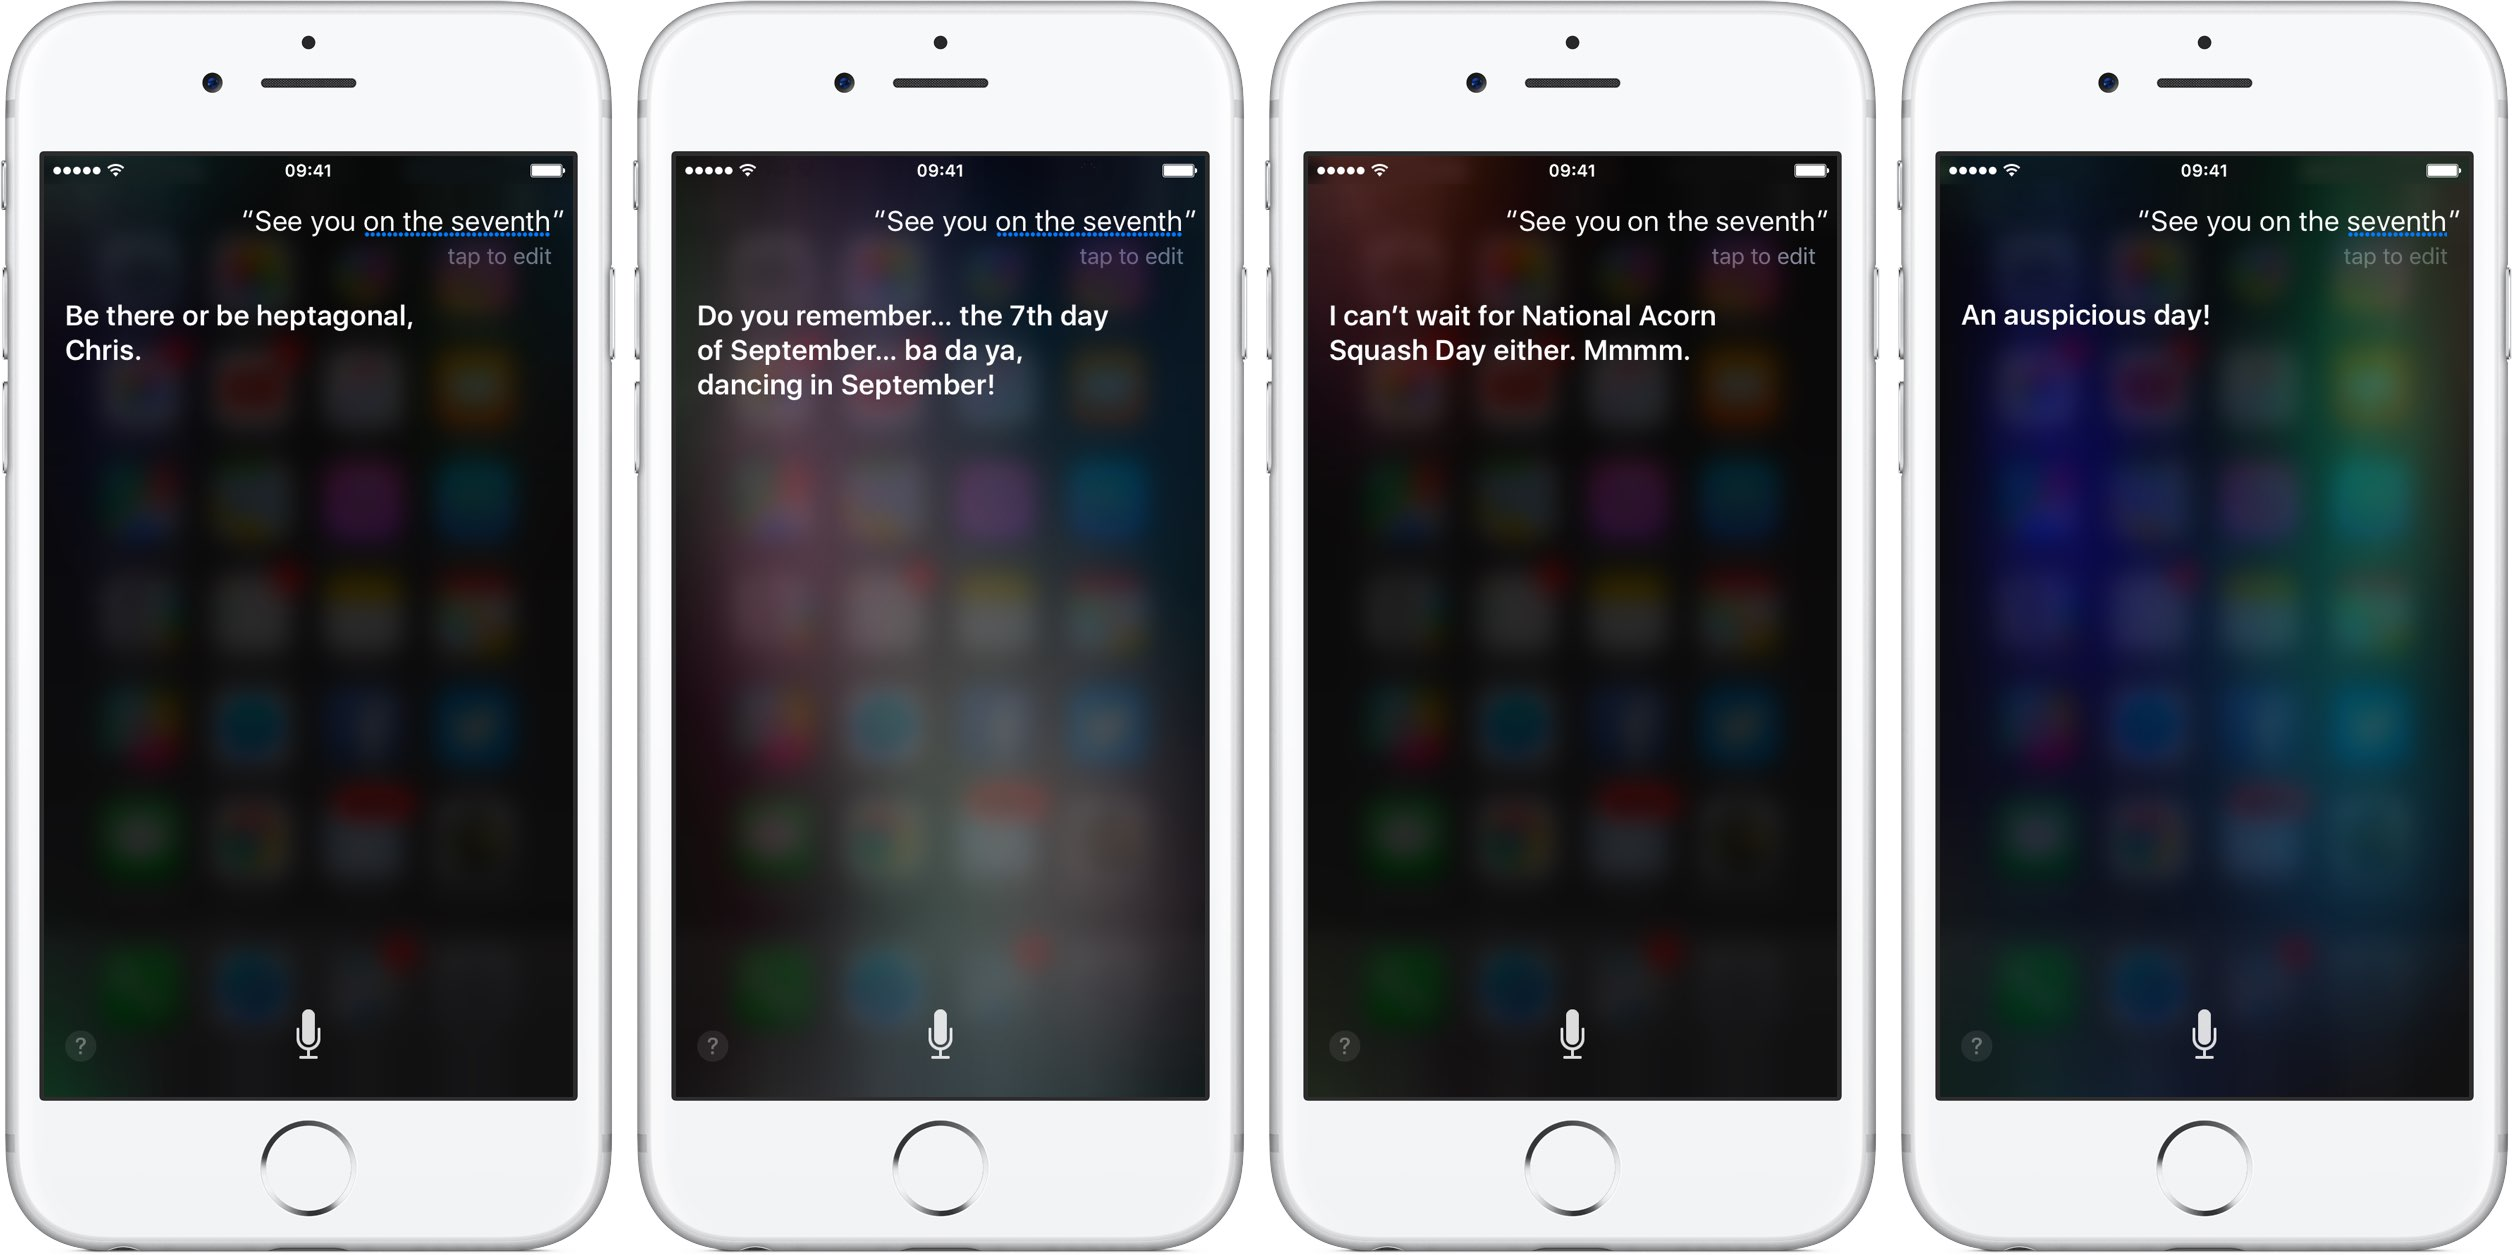 Siri iPhone 7 event responses silver iPhone screenshot 002